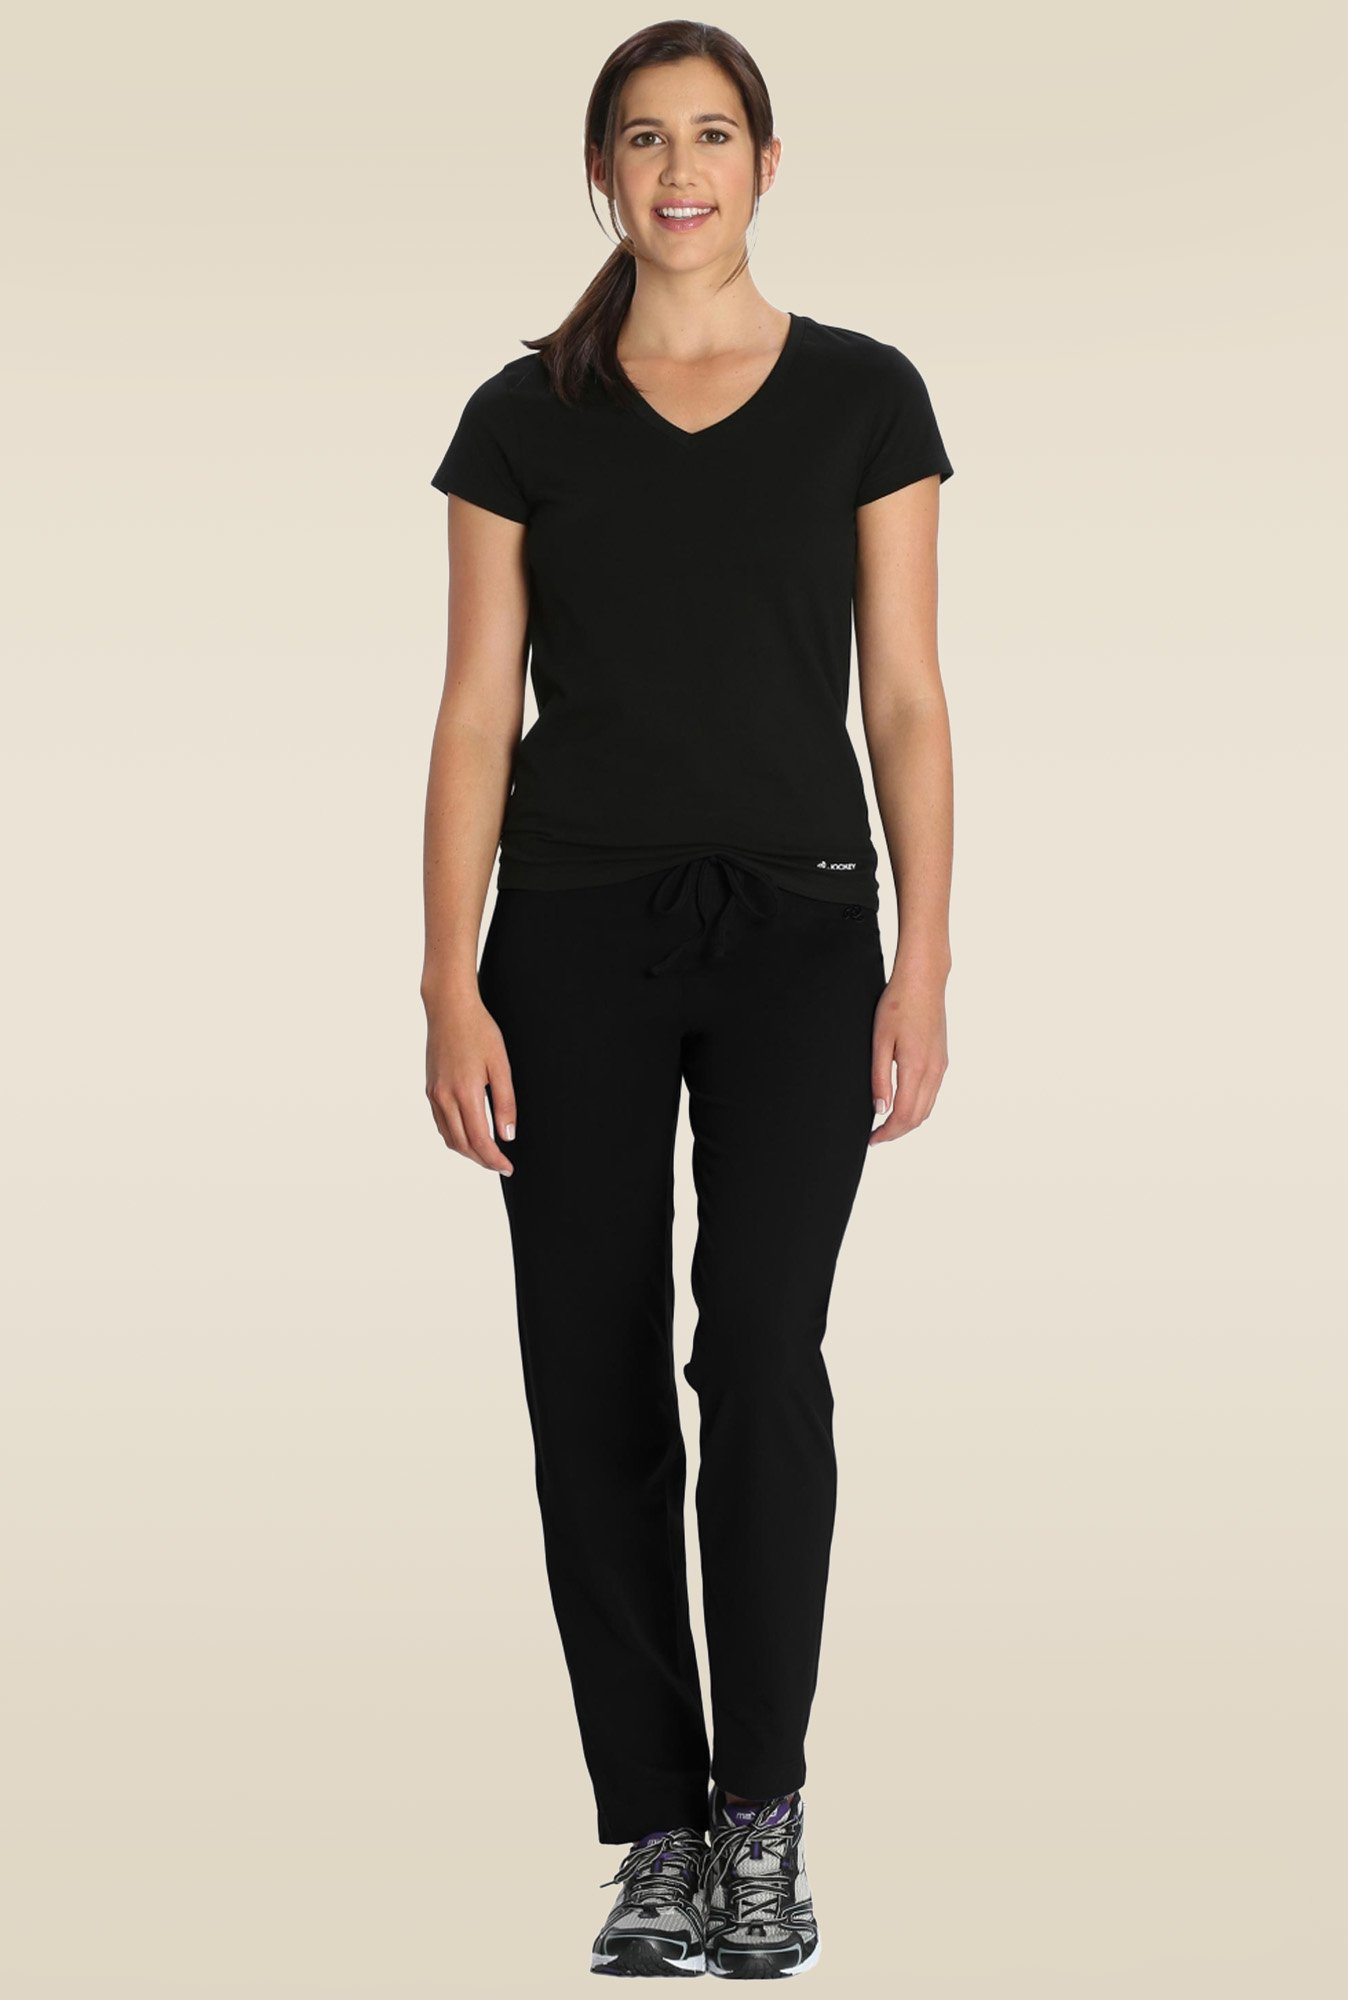 49dc93ef25f Jockey Black Lounge Pants - 1301